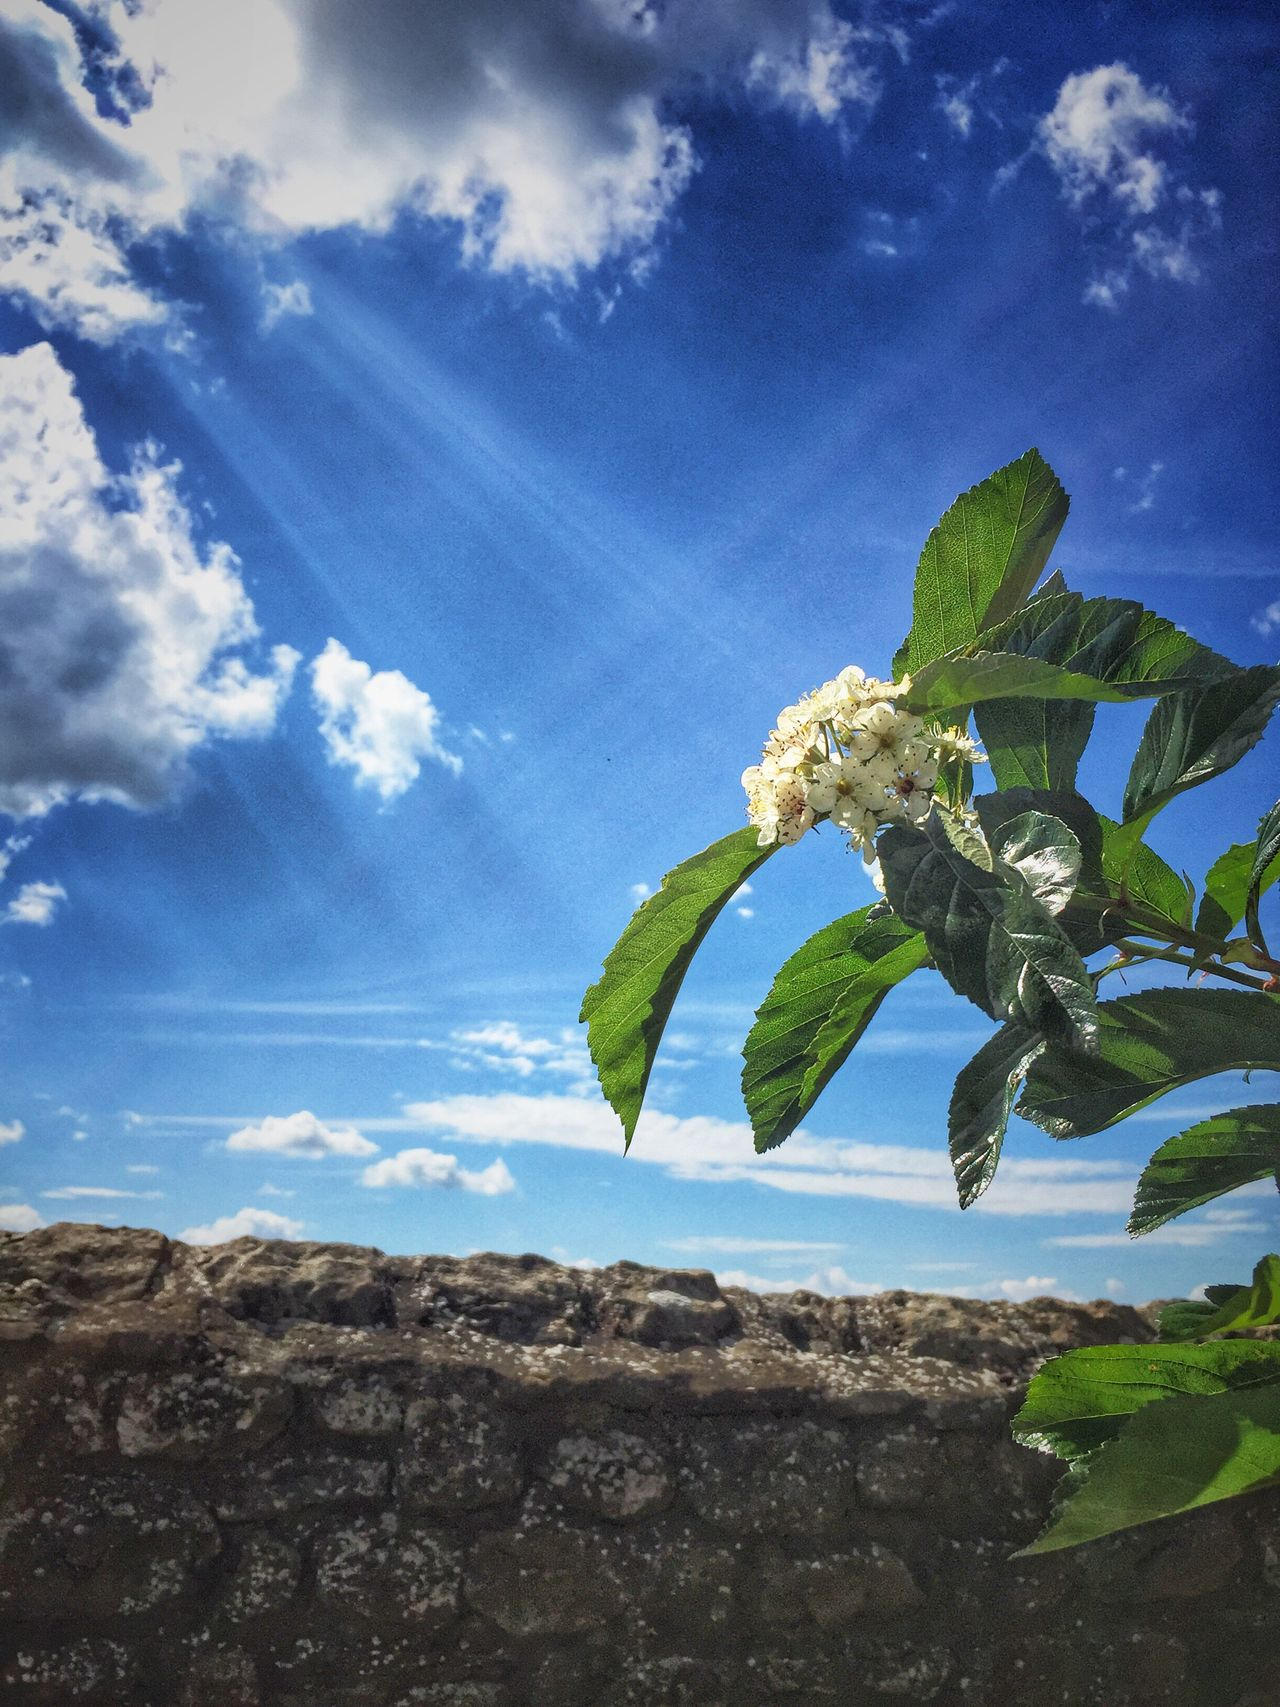 Sky Leaf Growth Nature Low Angle View Cloud - Sky Beauty In Nature Plant Day Blue Flower No People Outdoors Fragility Tree Banana Tree Freshness Close-up Flower Head